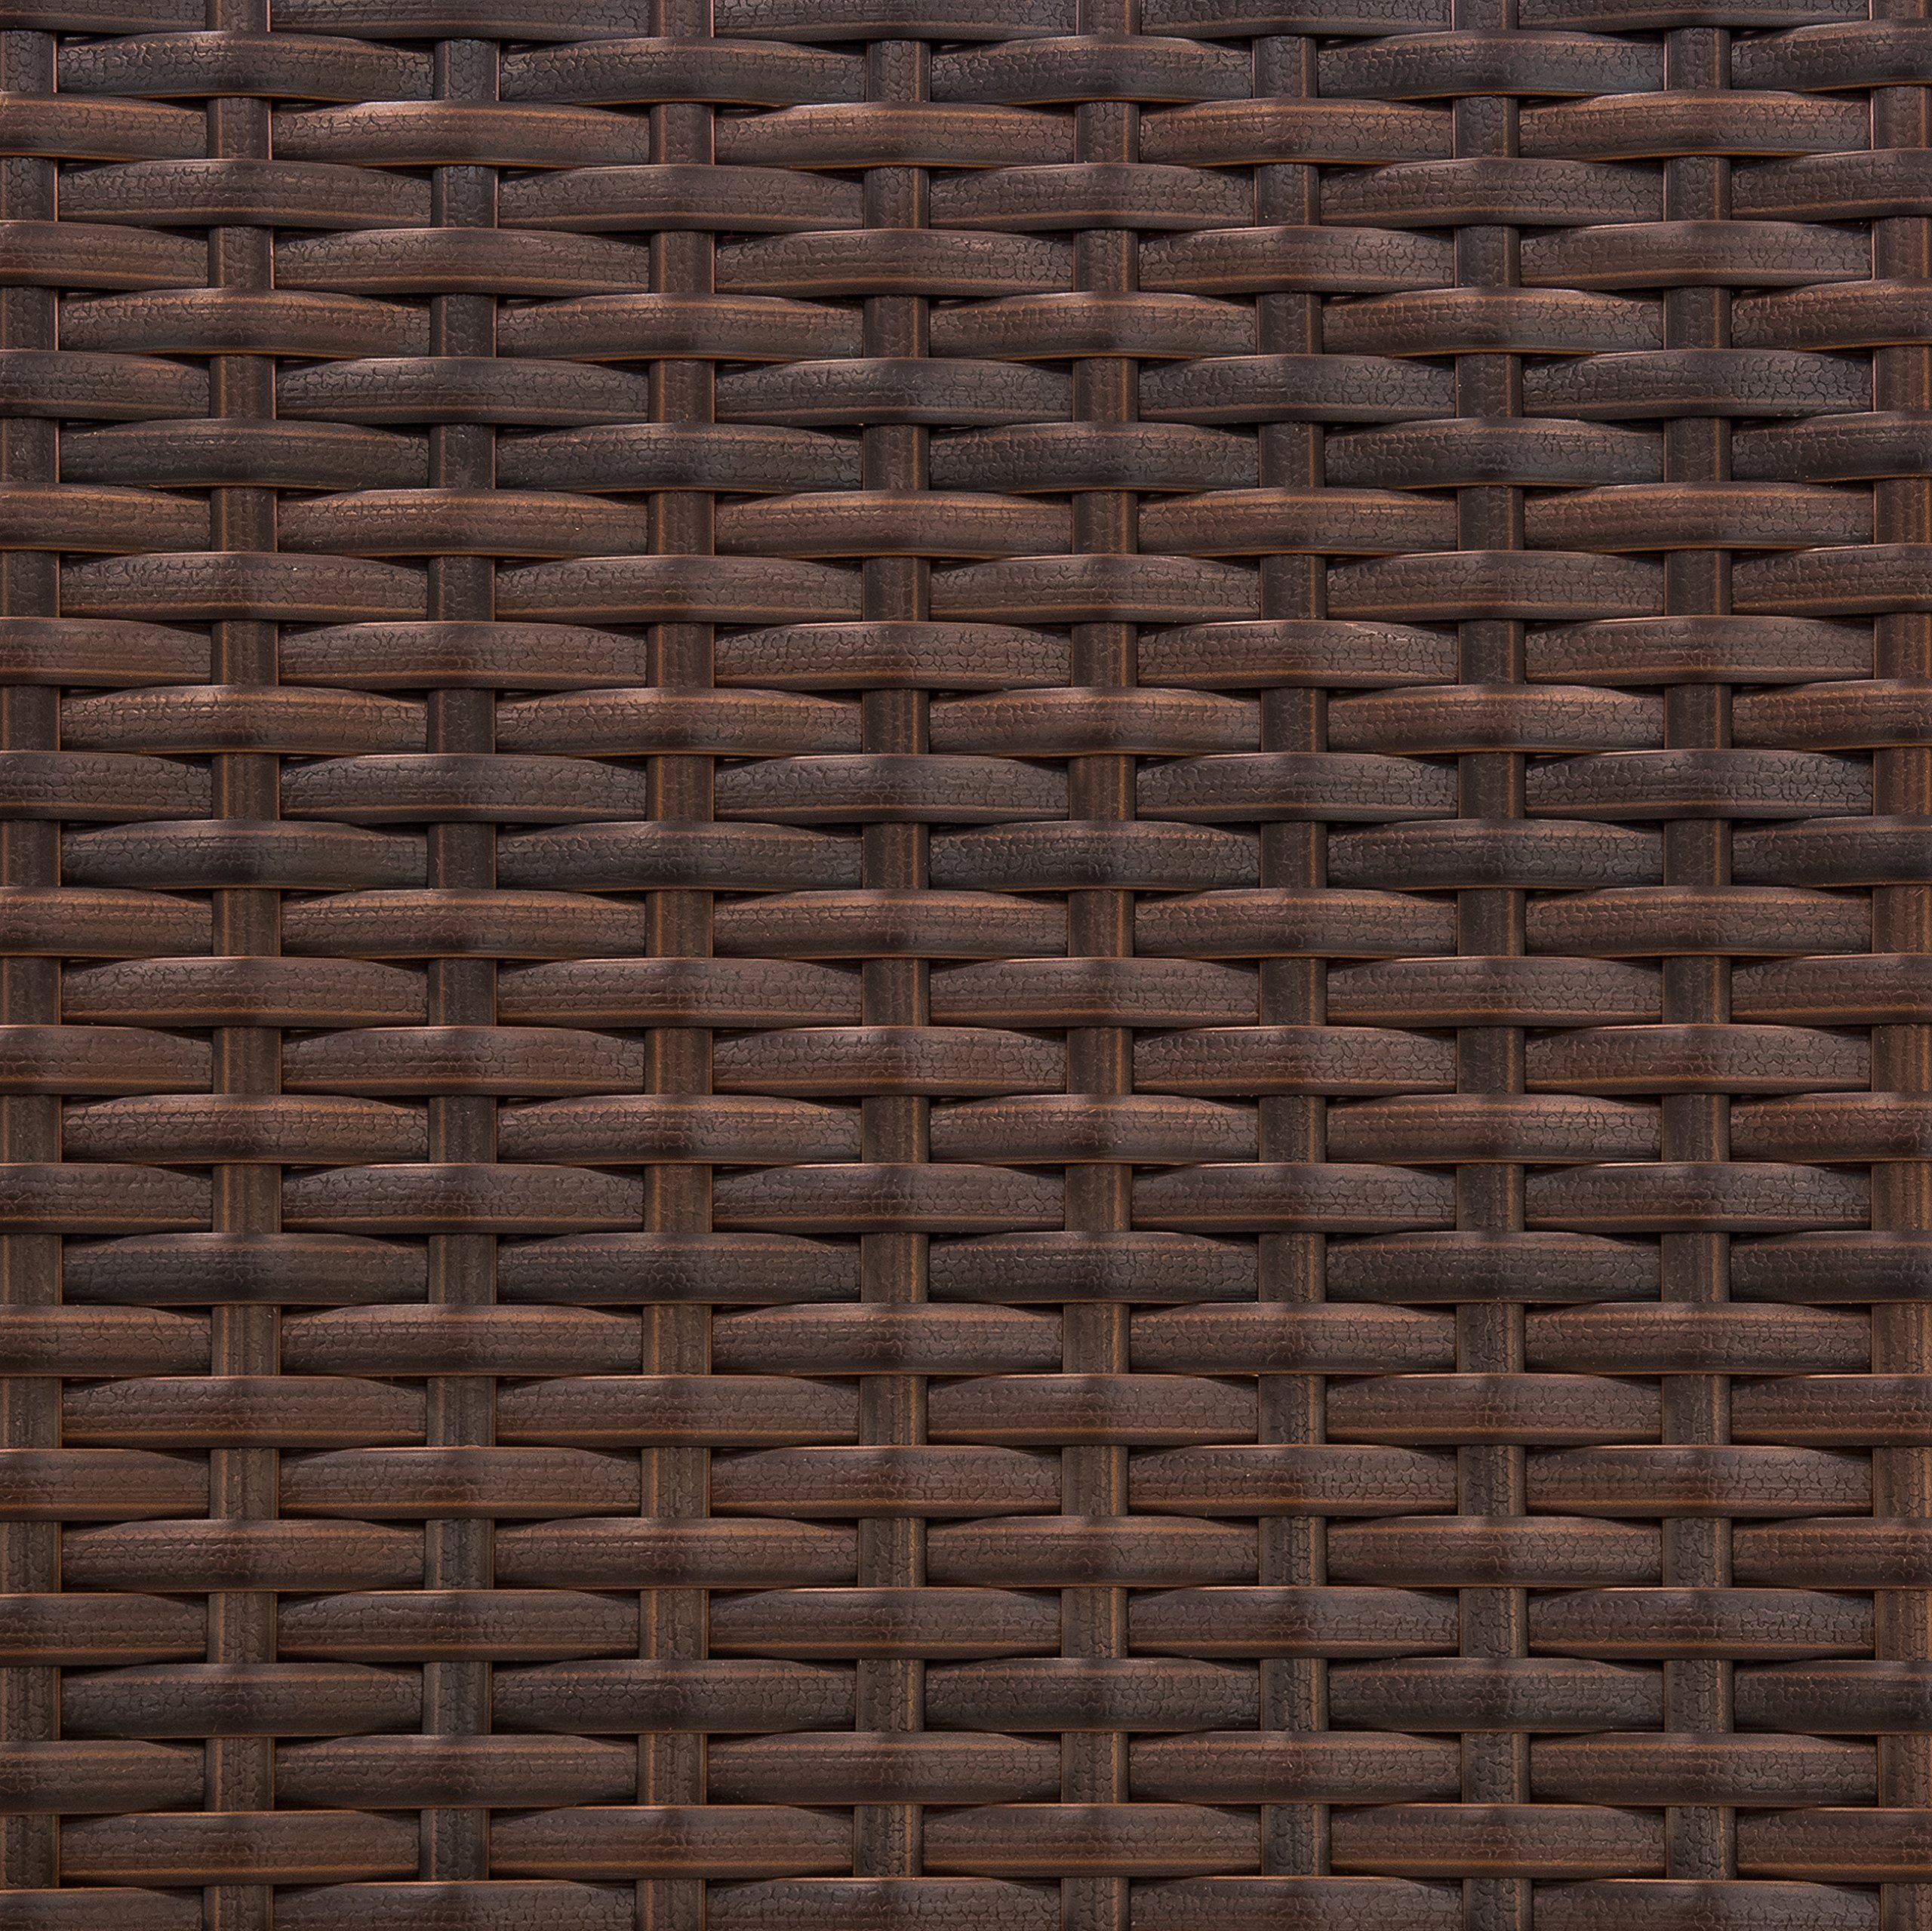 Best Choice Products Set of 2 Modern Contemporary Wicker Patio Dining Chairs w/Water Resistant Cushion - Brown by Best Choice Products (Image #5)